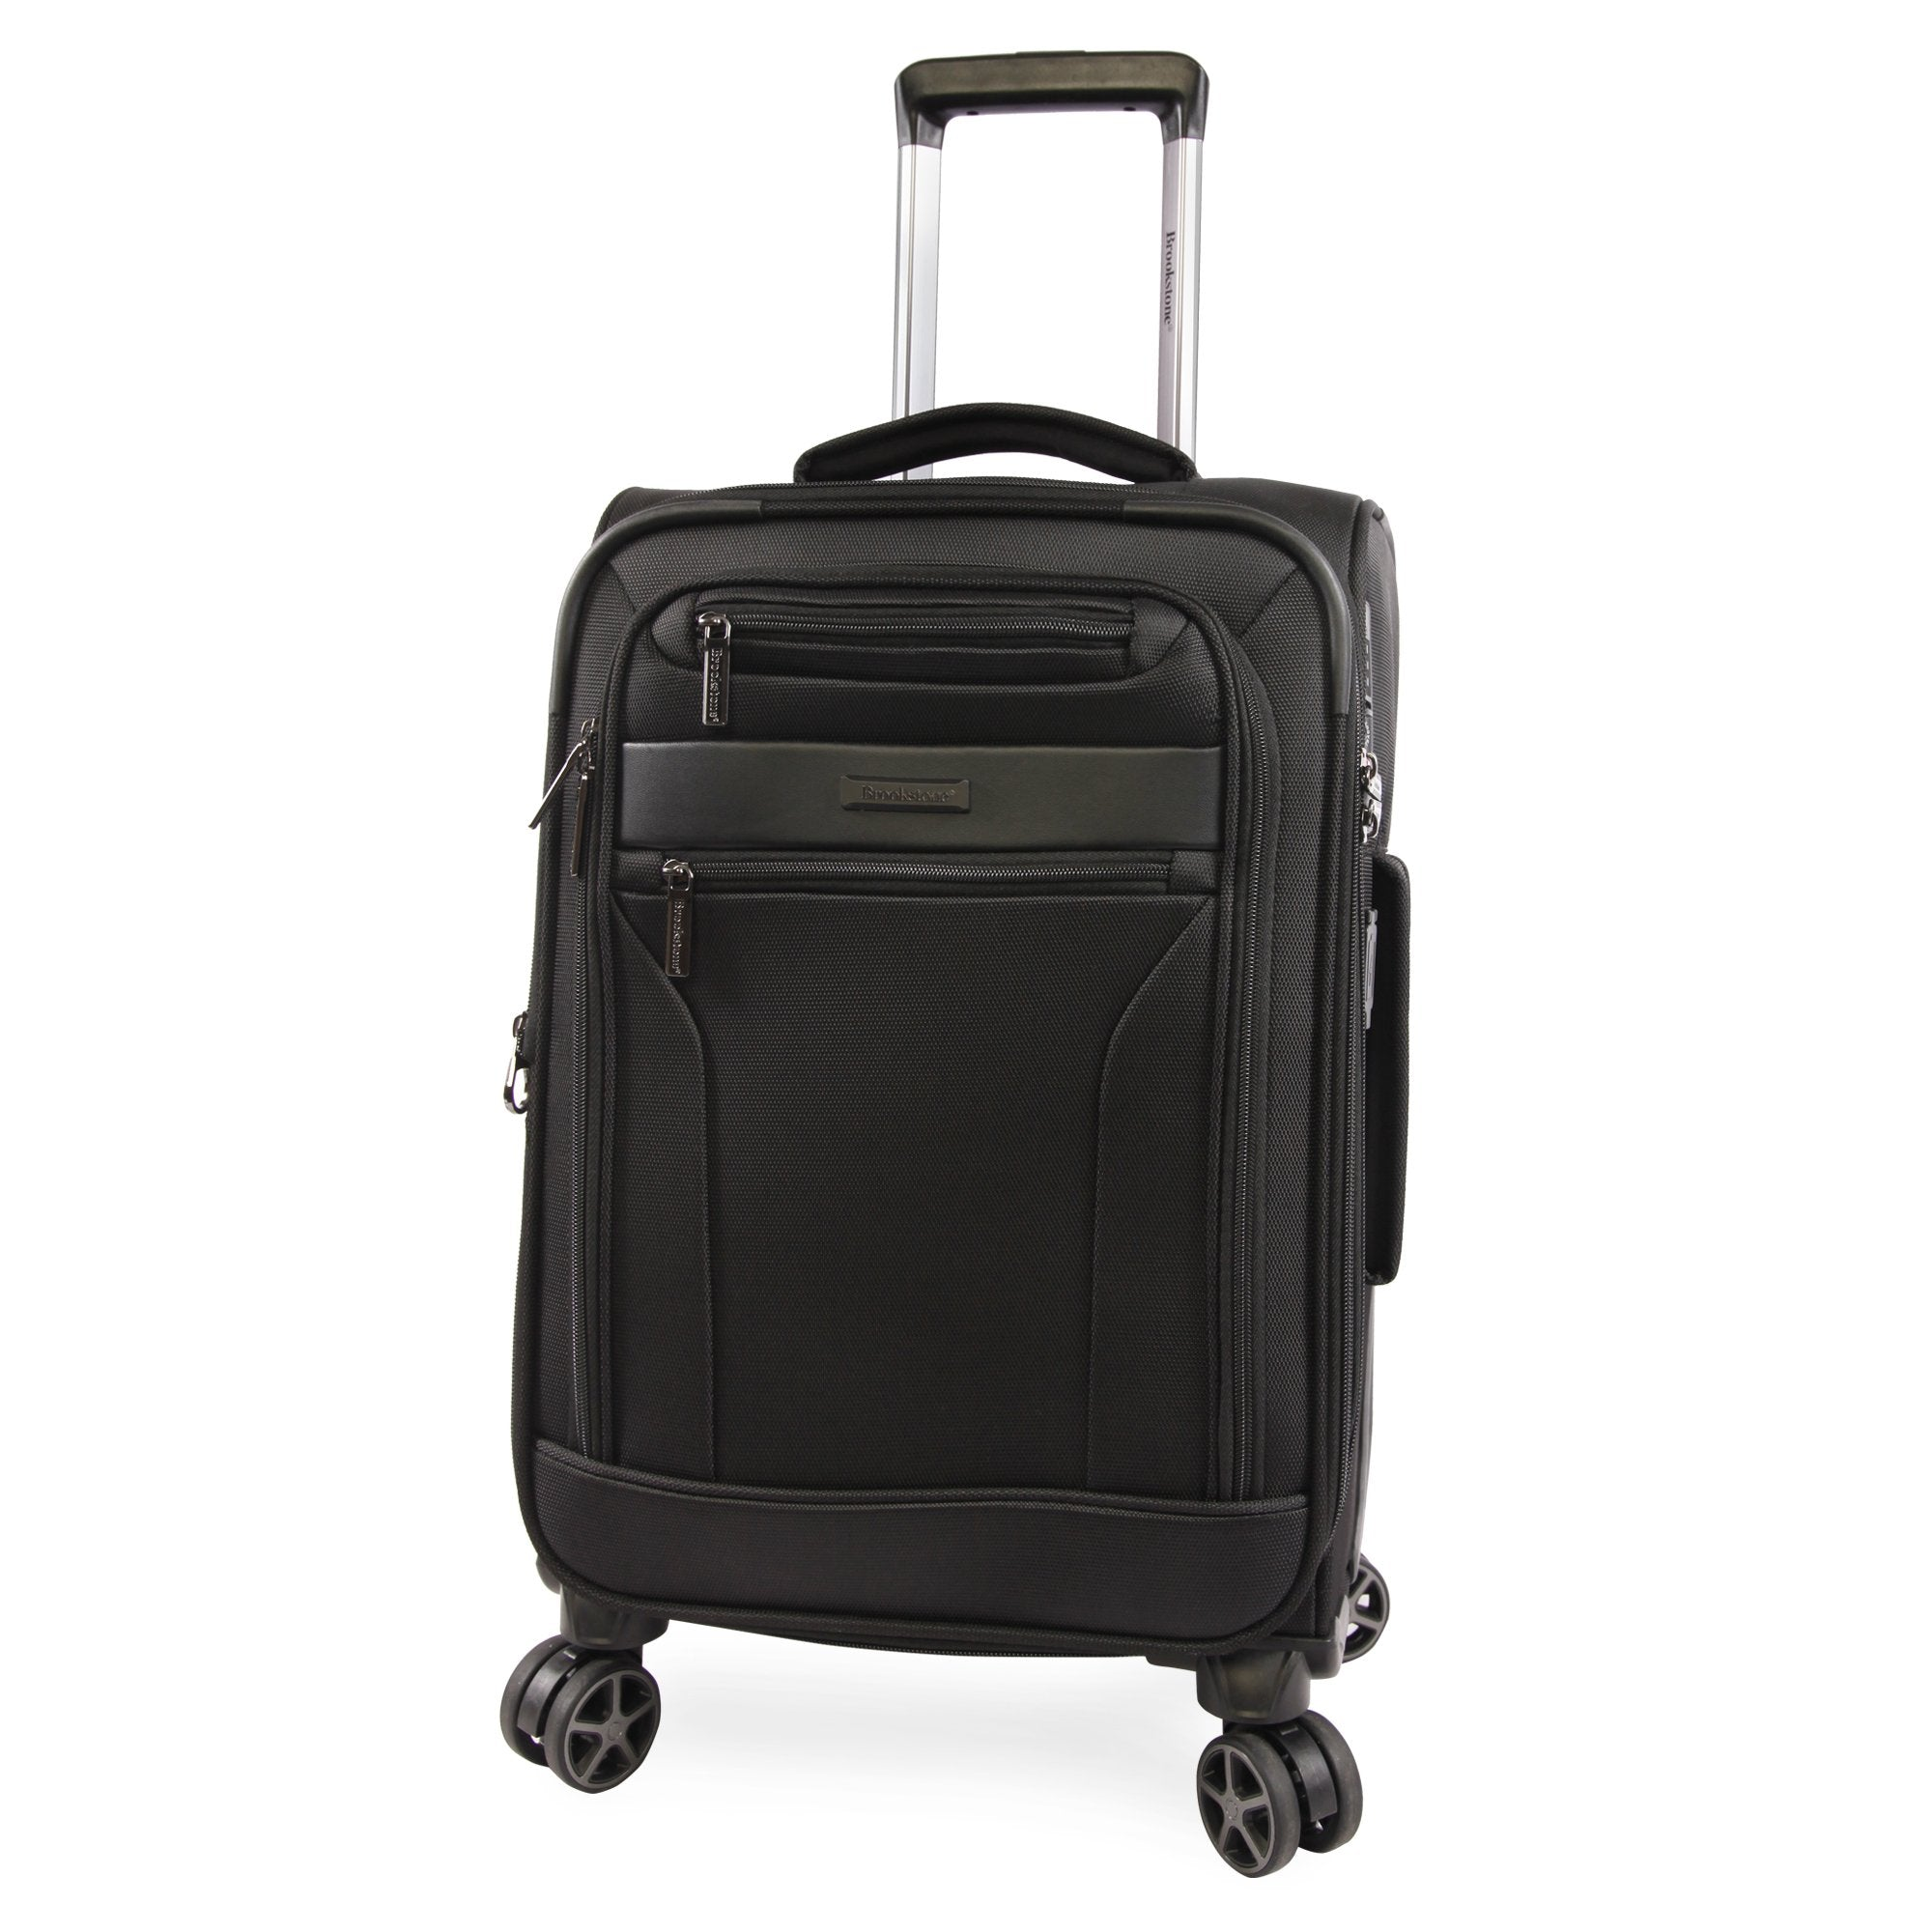 """American Traveler Brookstone Harbor 21"""" Softside Carry-On Spinner in Black, Size 21 Inch"""